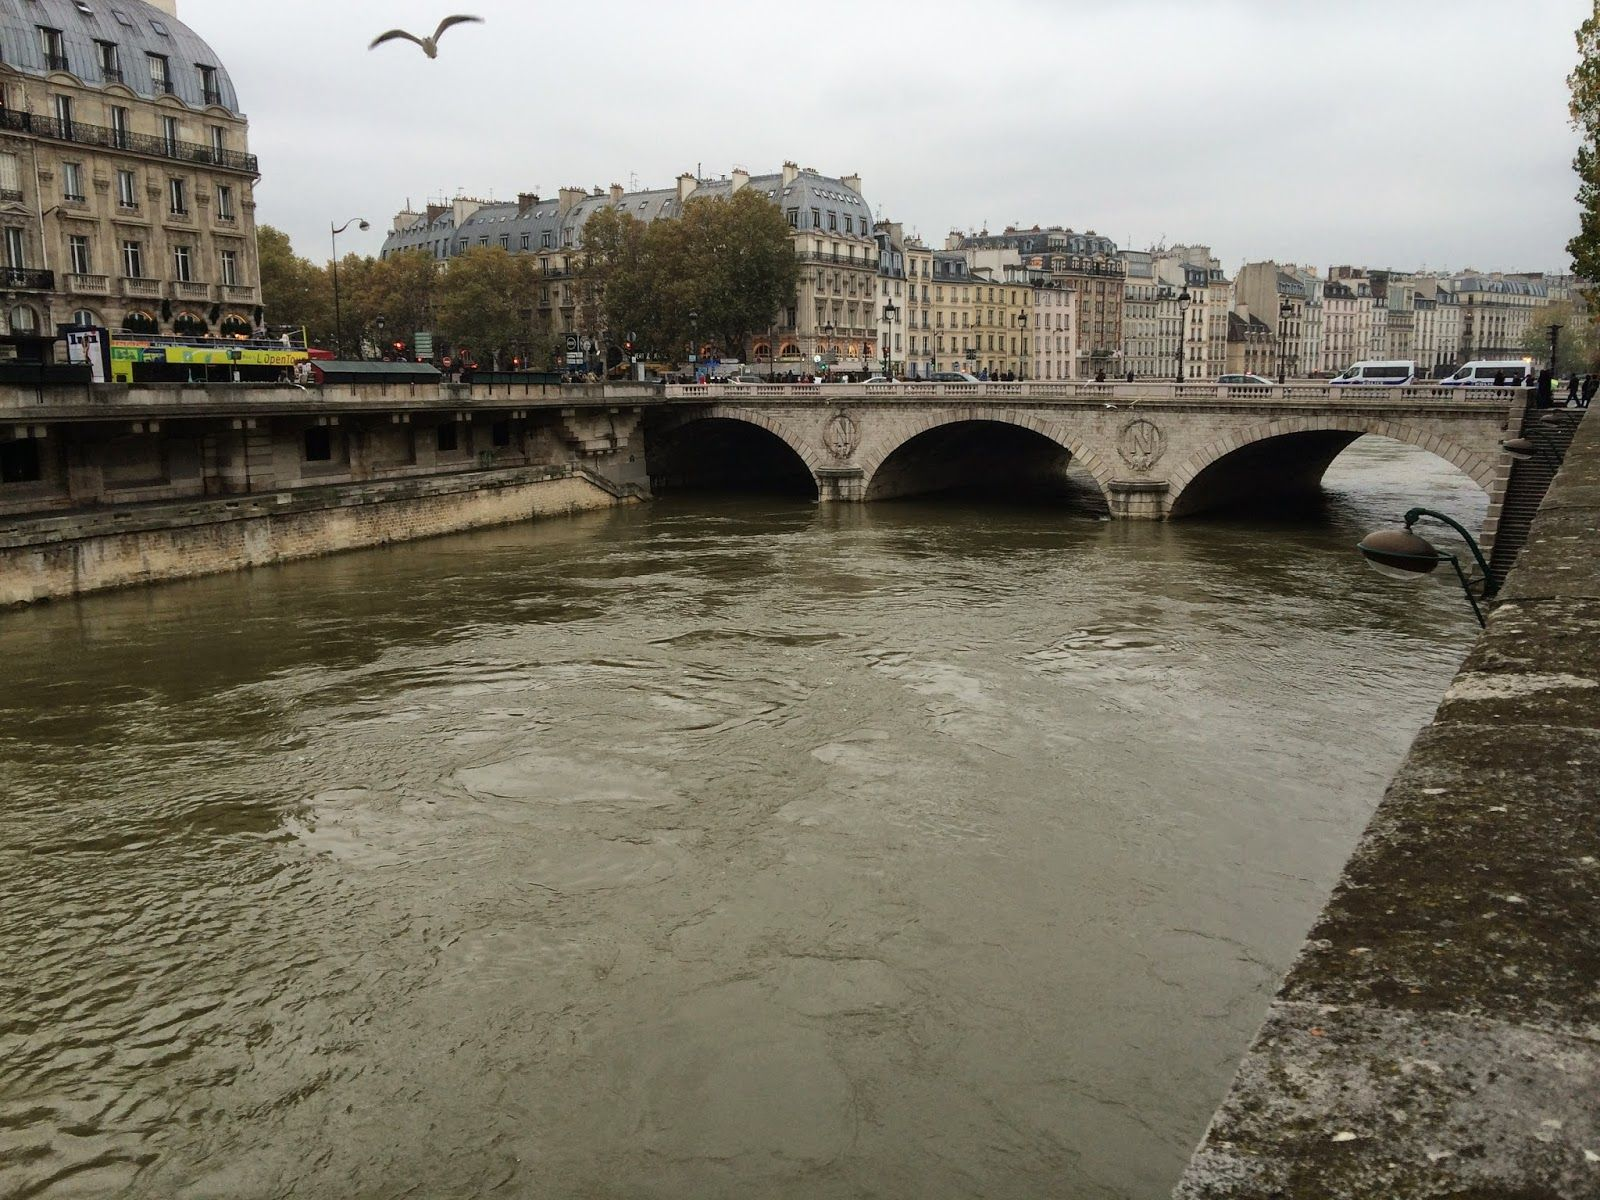 pont d'Arcole to Île de la Cite´ an island in the middle of the Seine River the houses the breath taking Notre Dame Cathedral. thrifty chic LA | life + travel + style: Walking through Paris